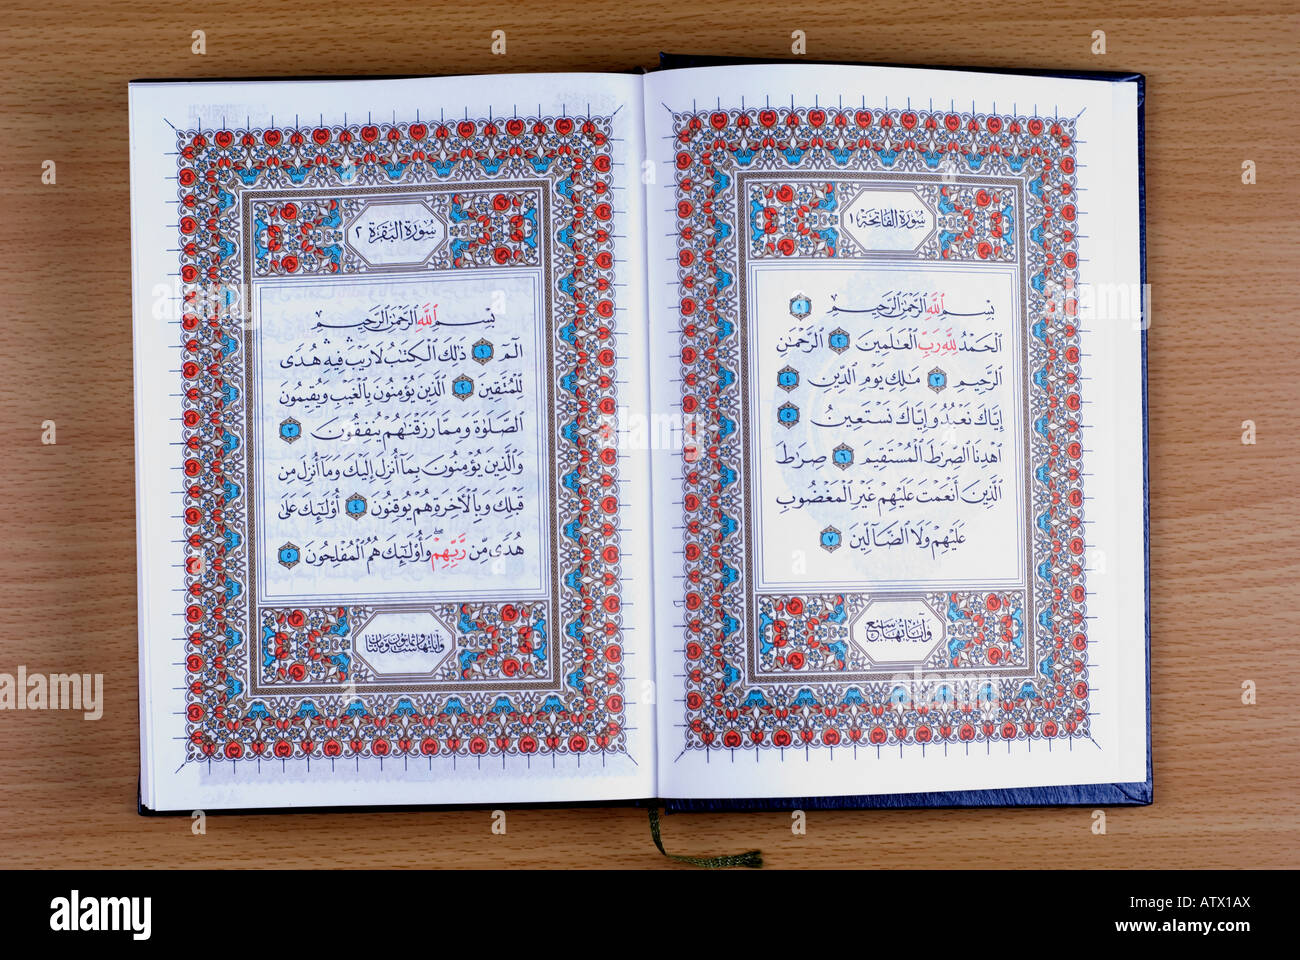 Quran Pages Stock Photos & Quran Pages Stock Images - Alamy